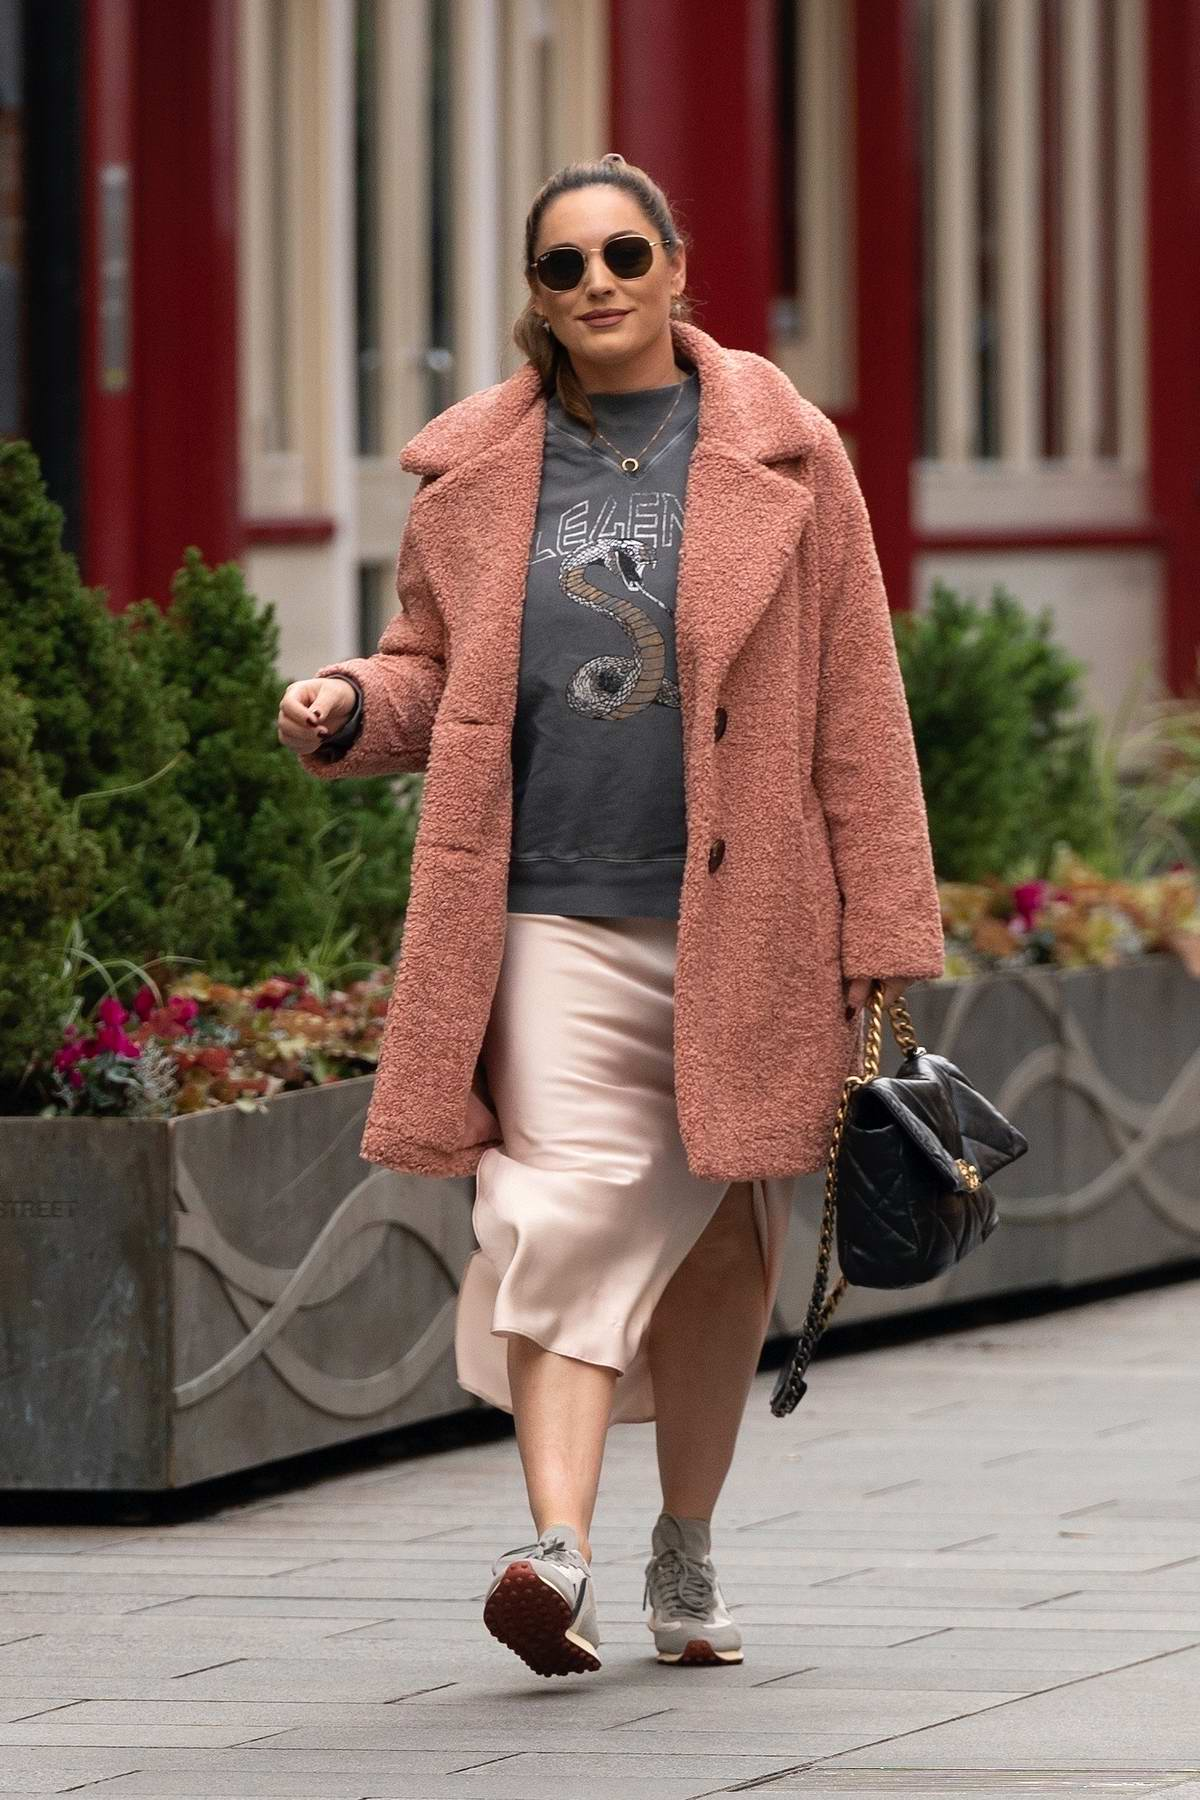 Kelly Brook looks cozy in a teddy coat as she arrives at the Global Radio Studios in London, UK